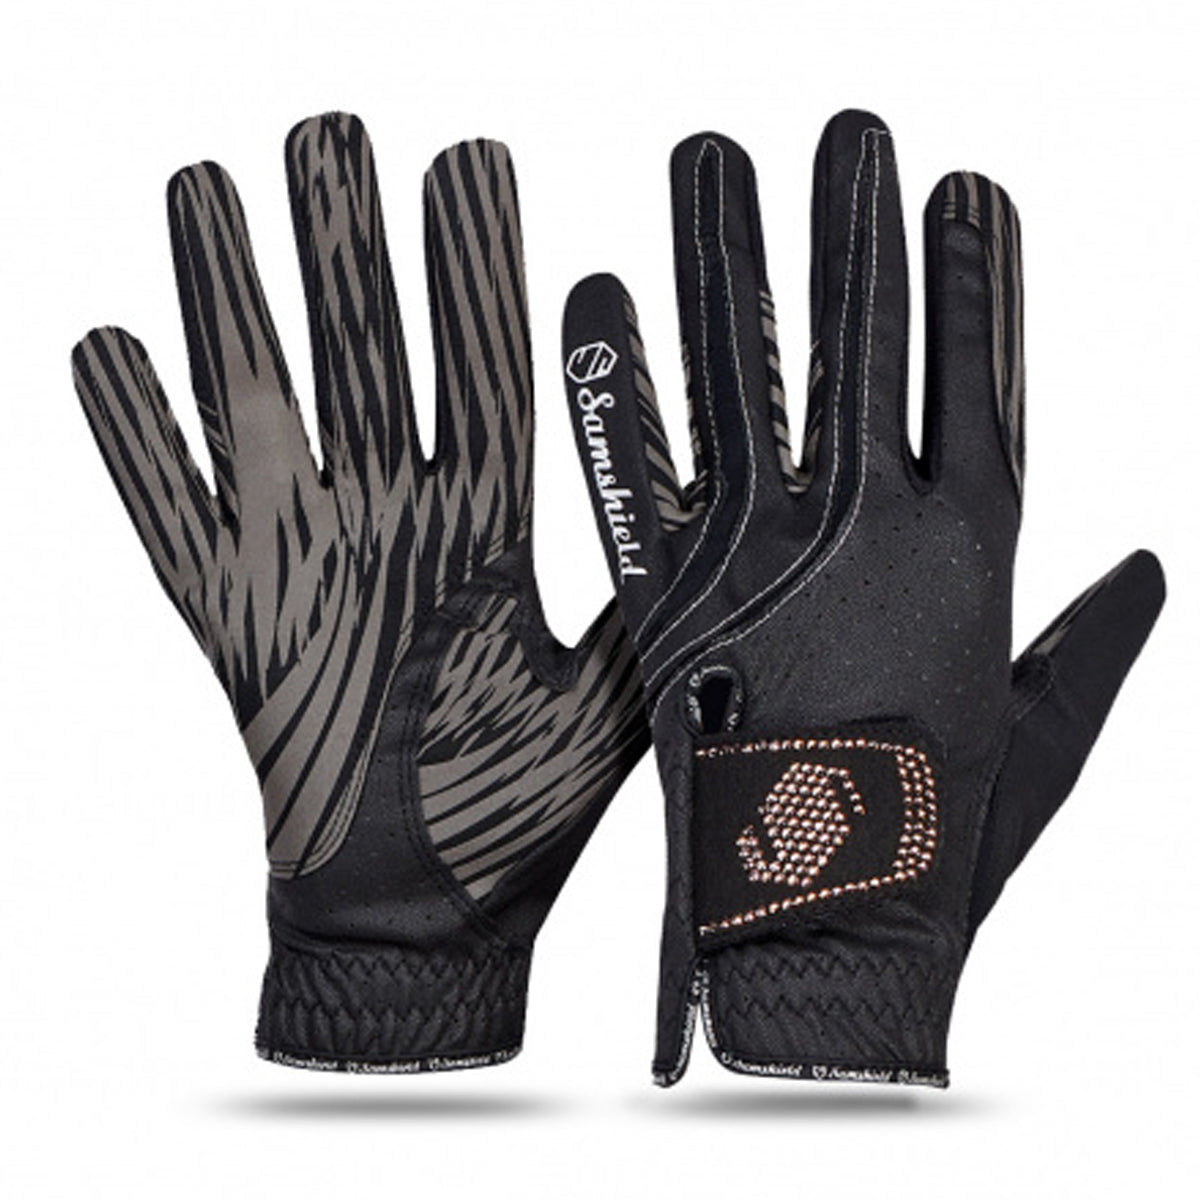 Samshield V-Skin Riding Gloves